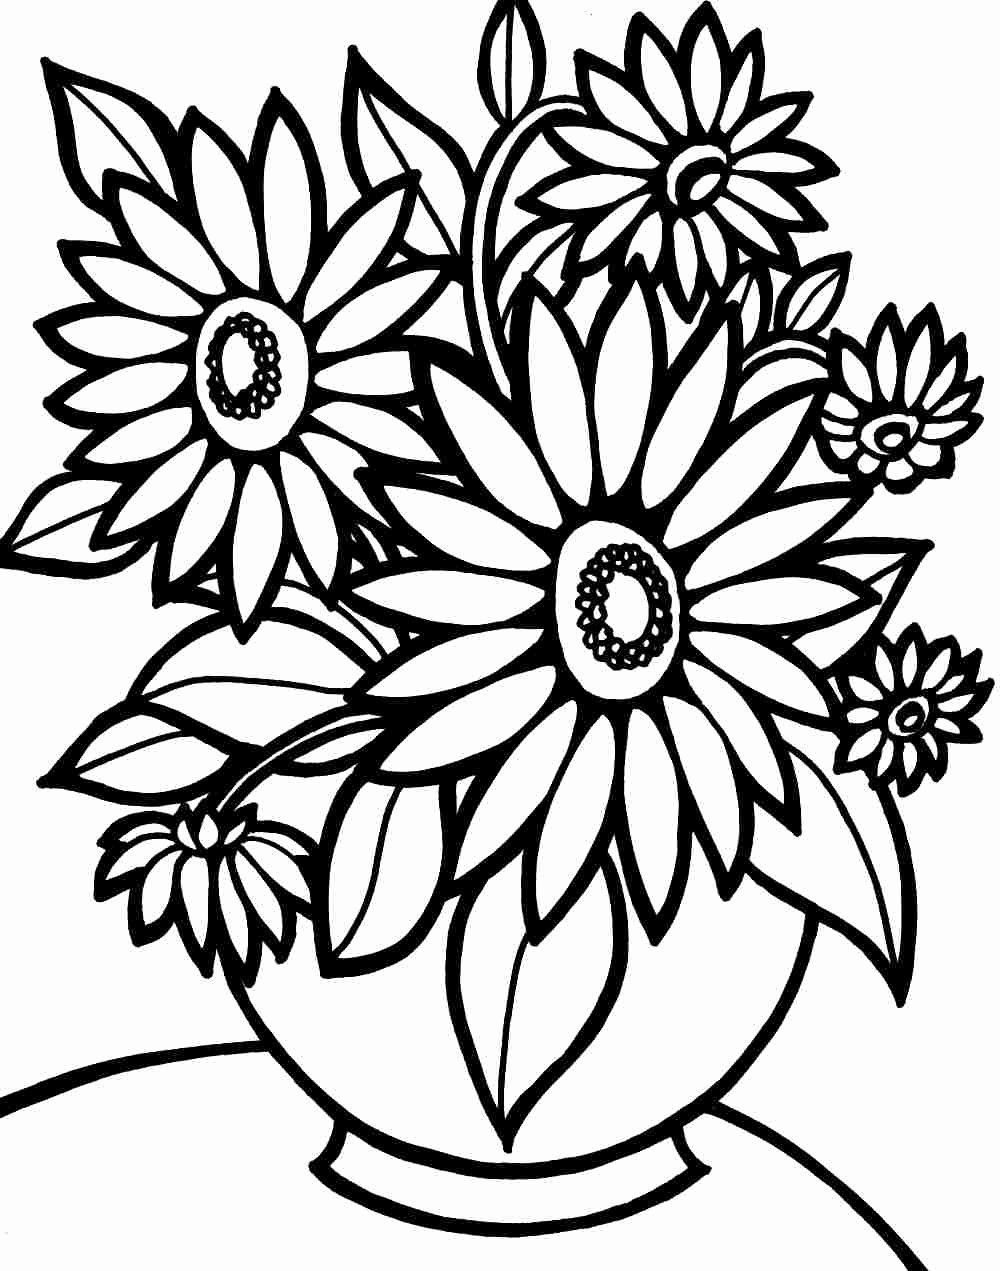 Large Coloring Books For Adults Best Of Coloring Book Free Rint Coloringages For Adu In 2020 Printable Flower Coloring Pages Easy Coloring Pages Flower Coloring Sheets